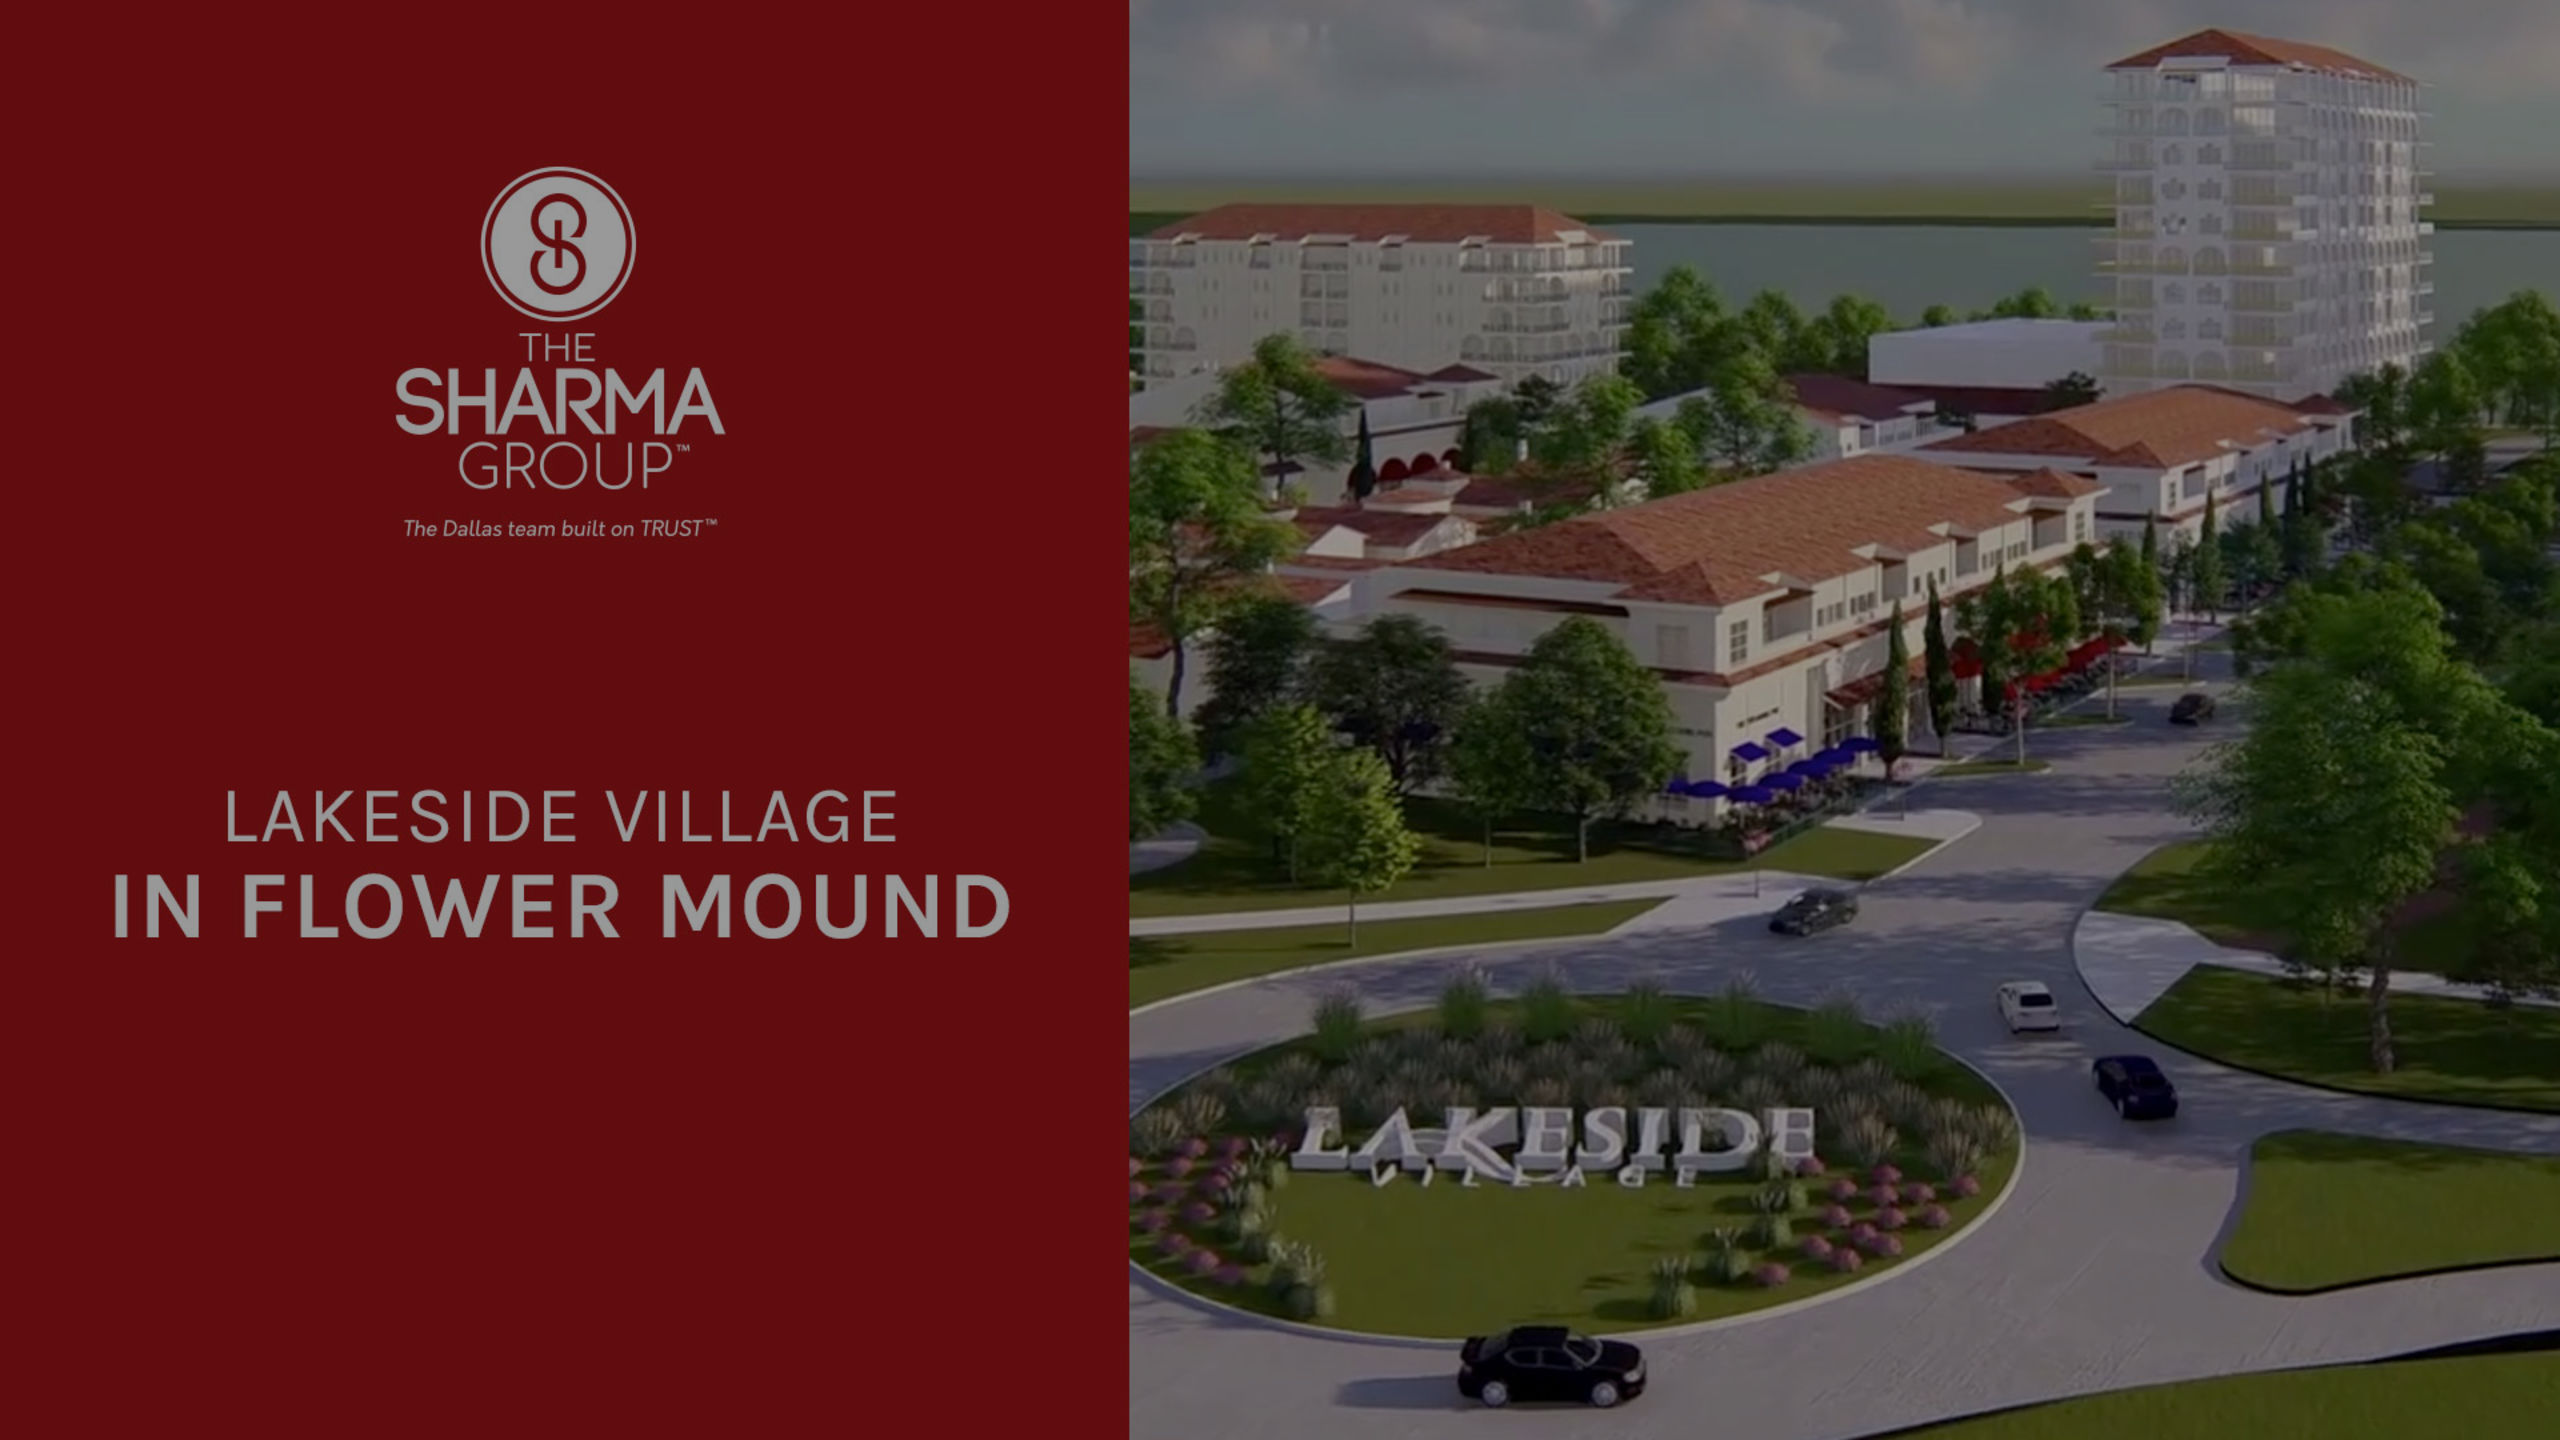 Lakeside Village | The Sharma Group